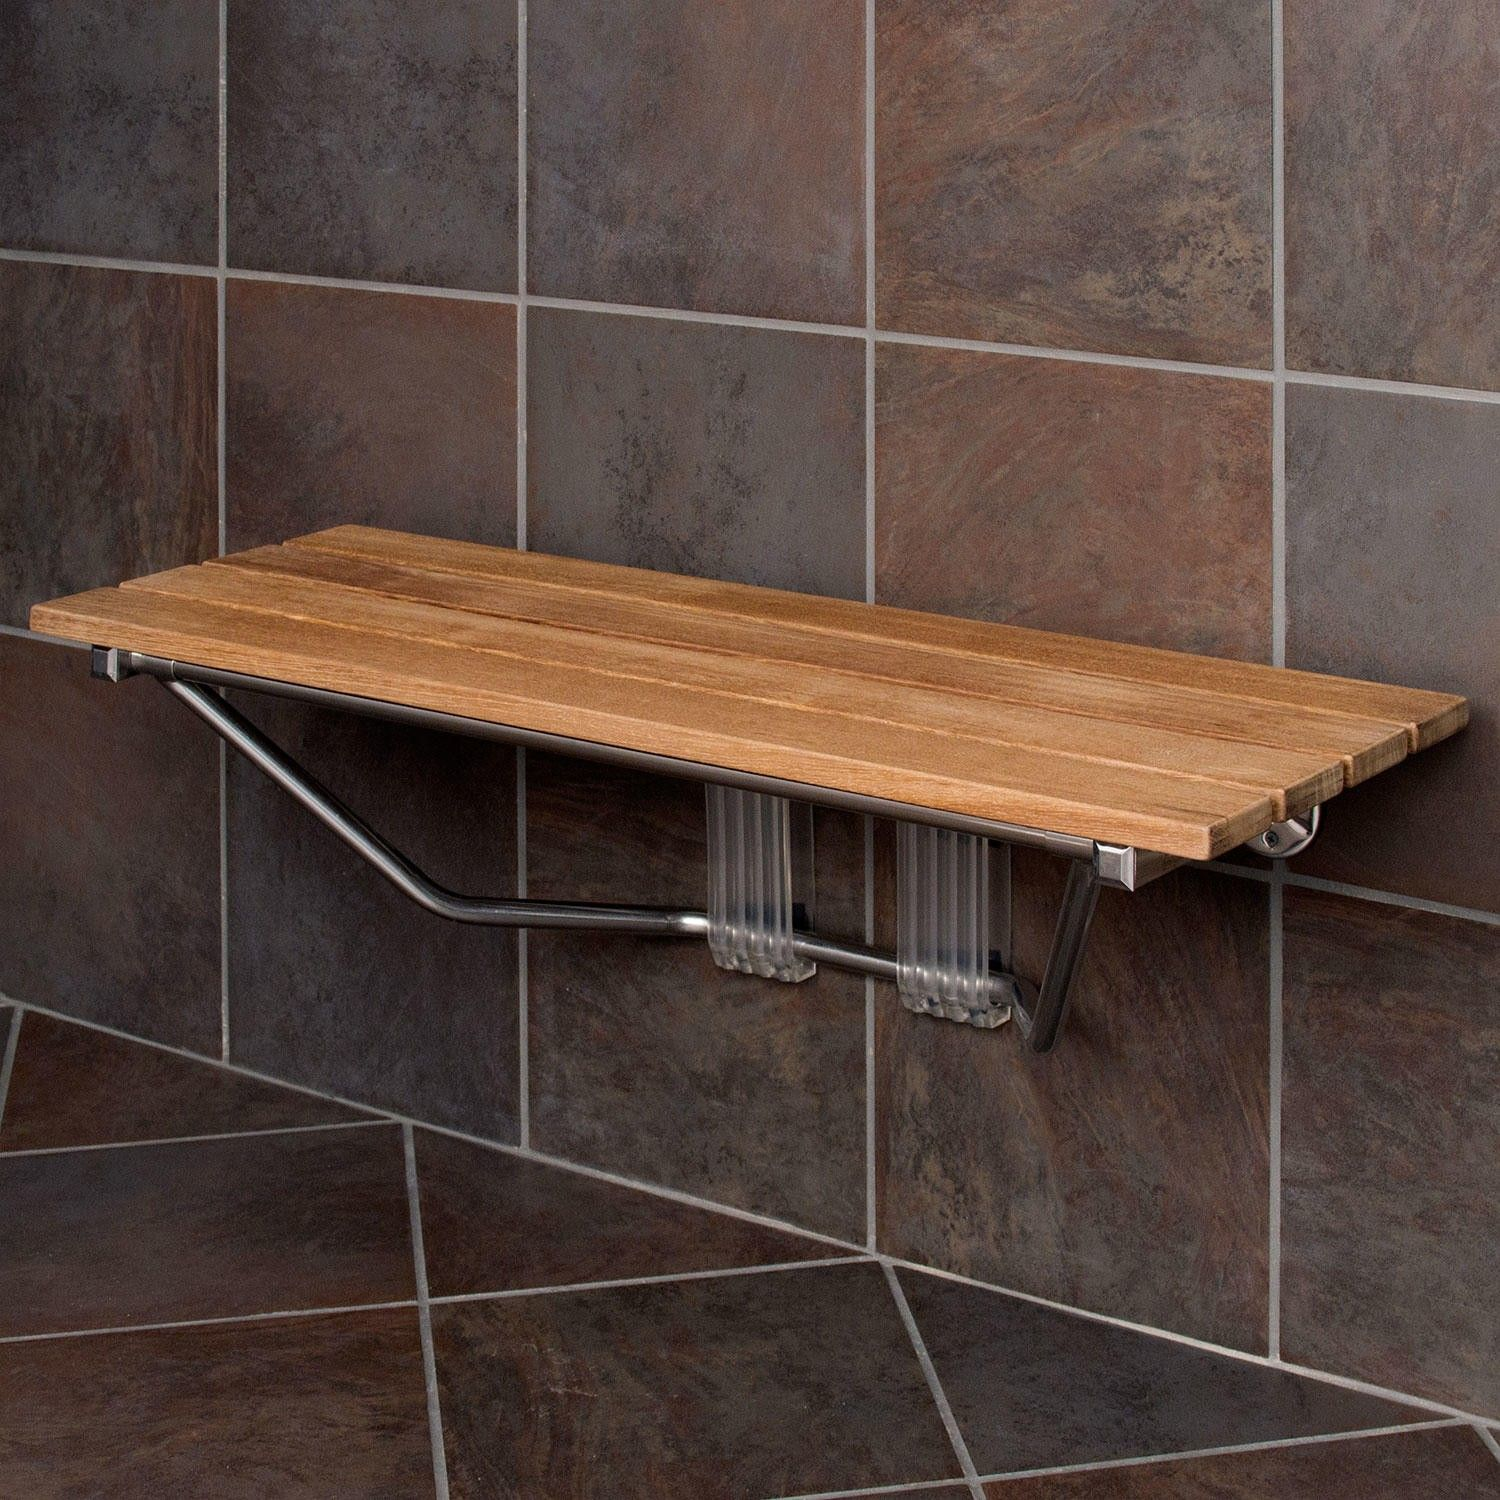 36 Folding Teak Shower Seat Shower Seat And Teak